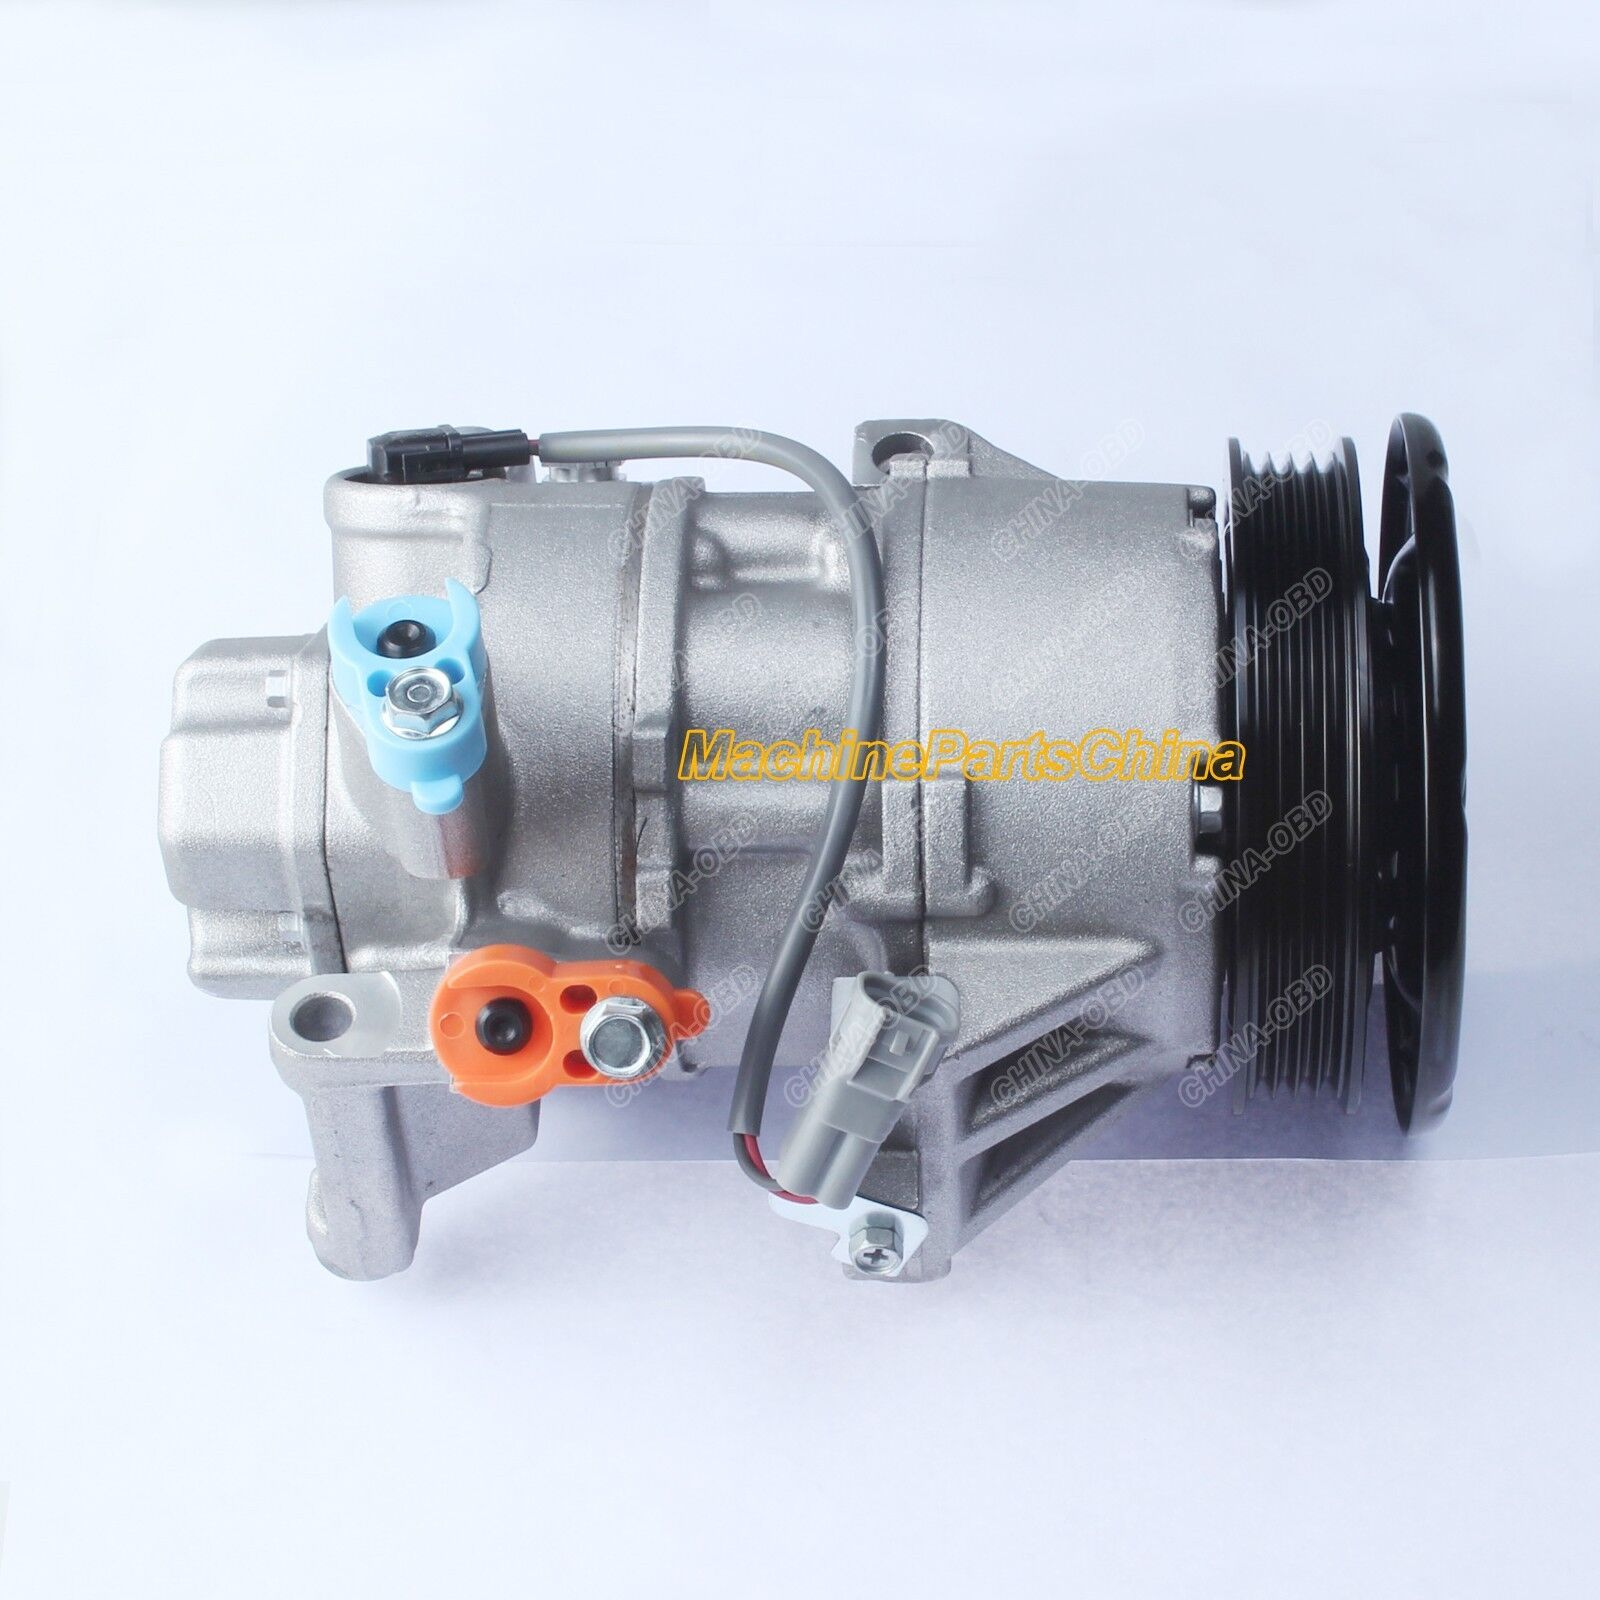 447260-1780 4PK AC Compressor Air Conditioning Compressor with Clutch for Toyota yaris 1.3 Denso 5SER09C Air Conditioner Compressor Clutch Assy Spare Parts 3 Month Warranty